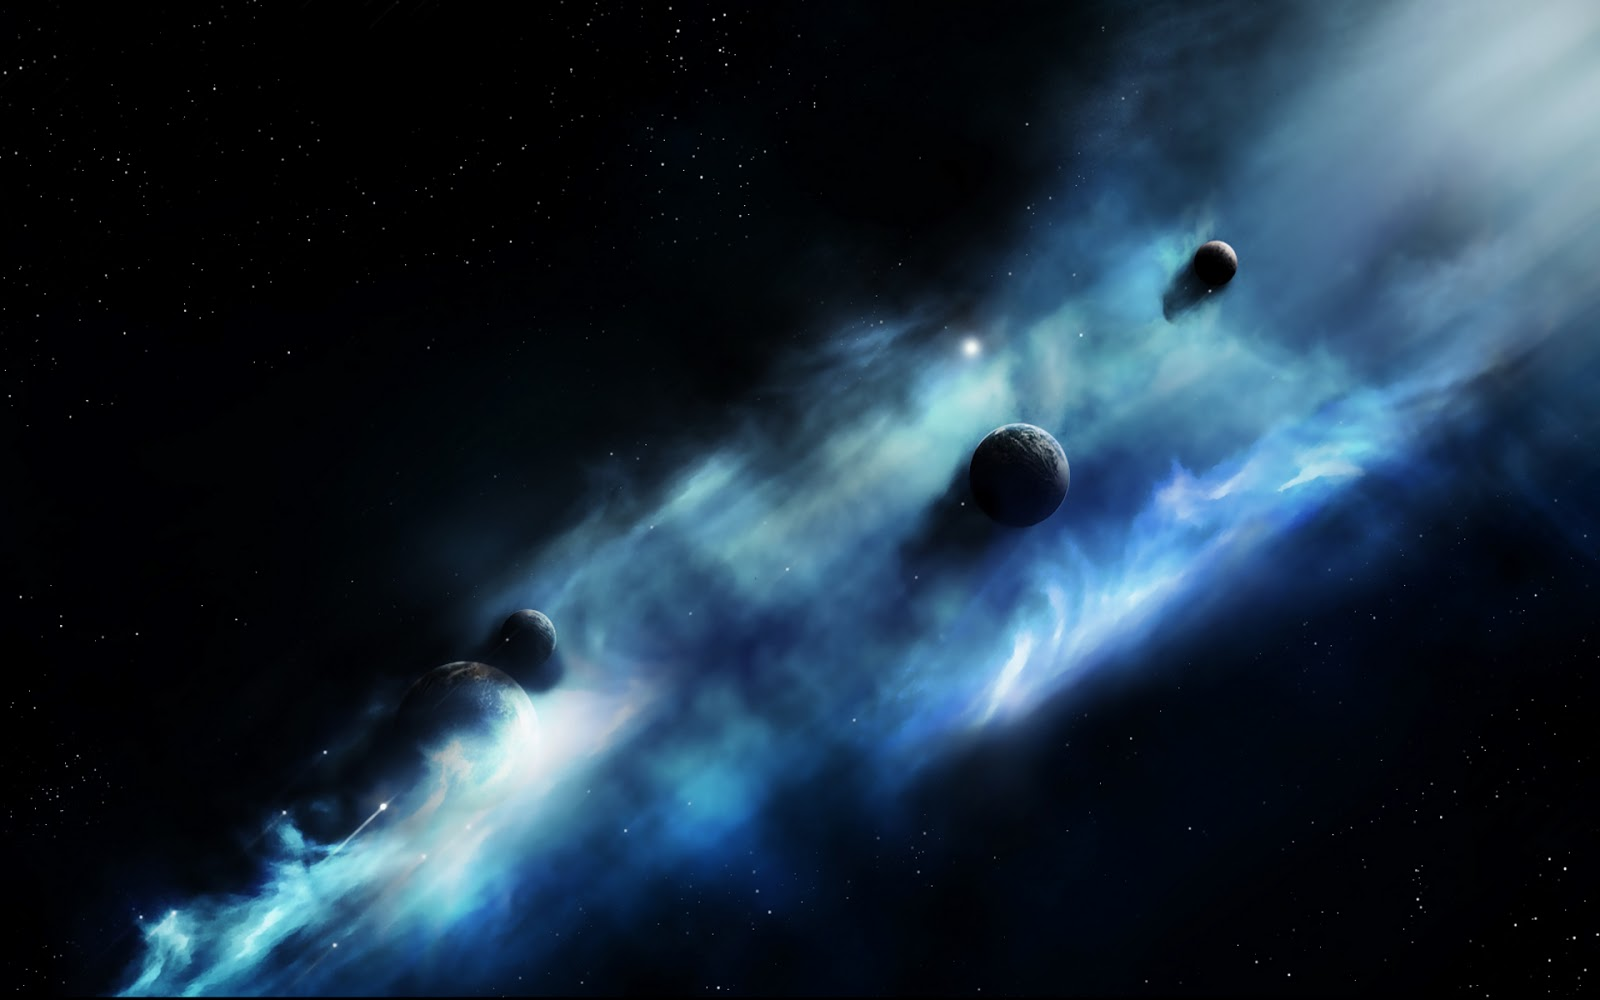 space hd 1920x1200 - photo #16